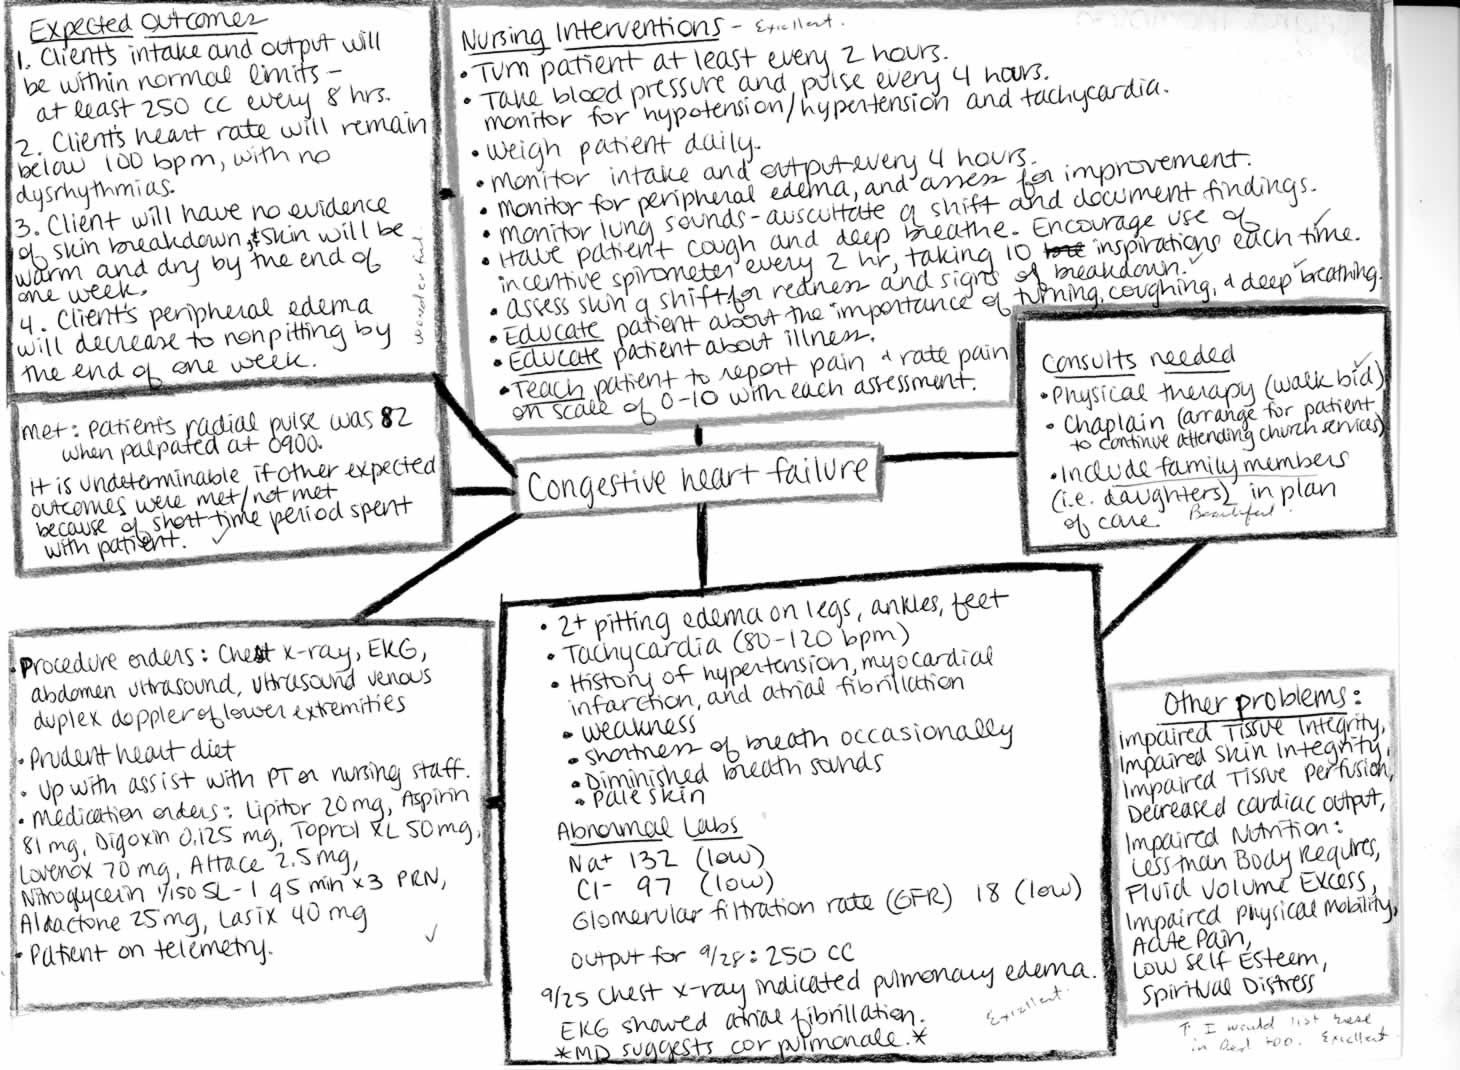 Concept Map Example Nursing.Nursing Concept Maps Process Clinical Pinterest Concept Map